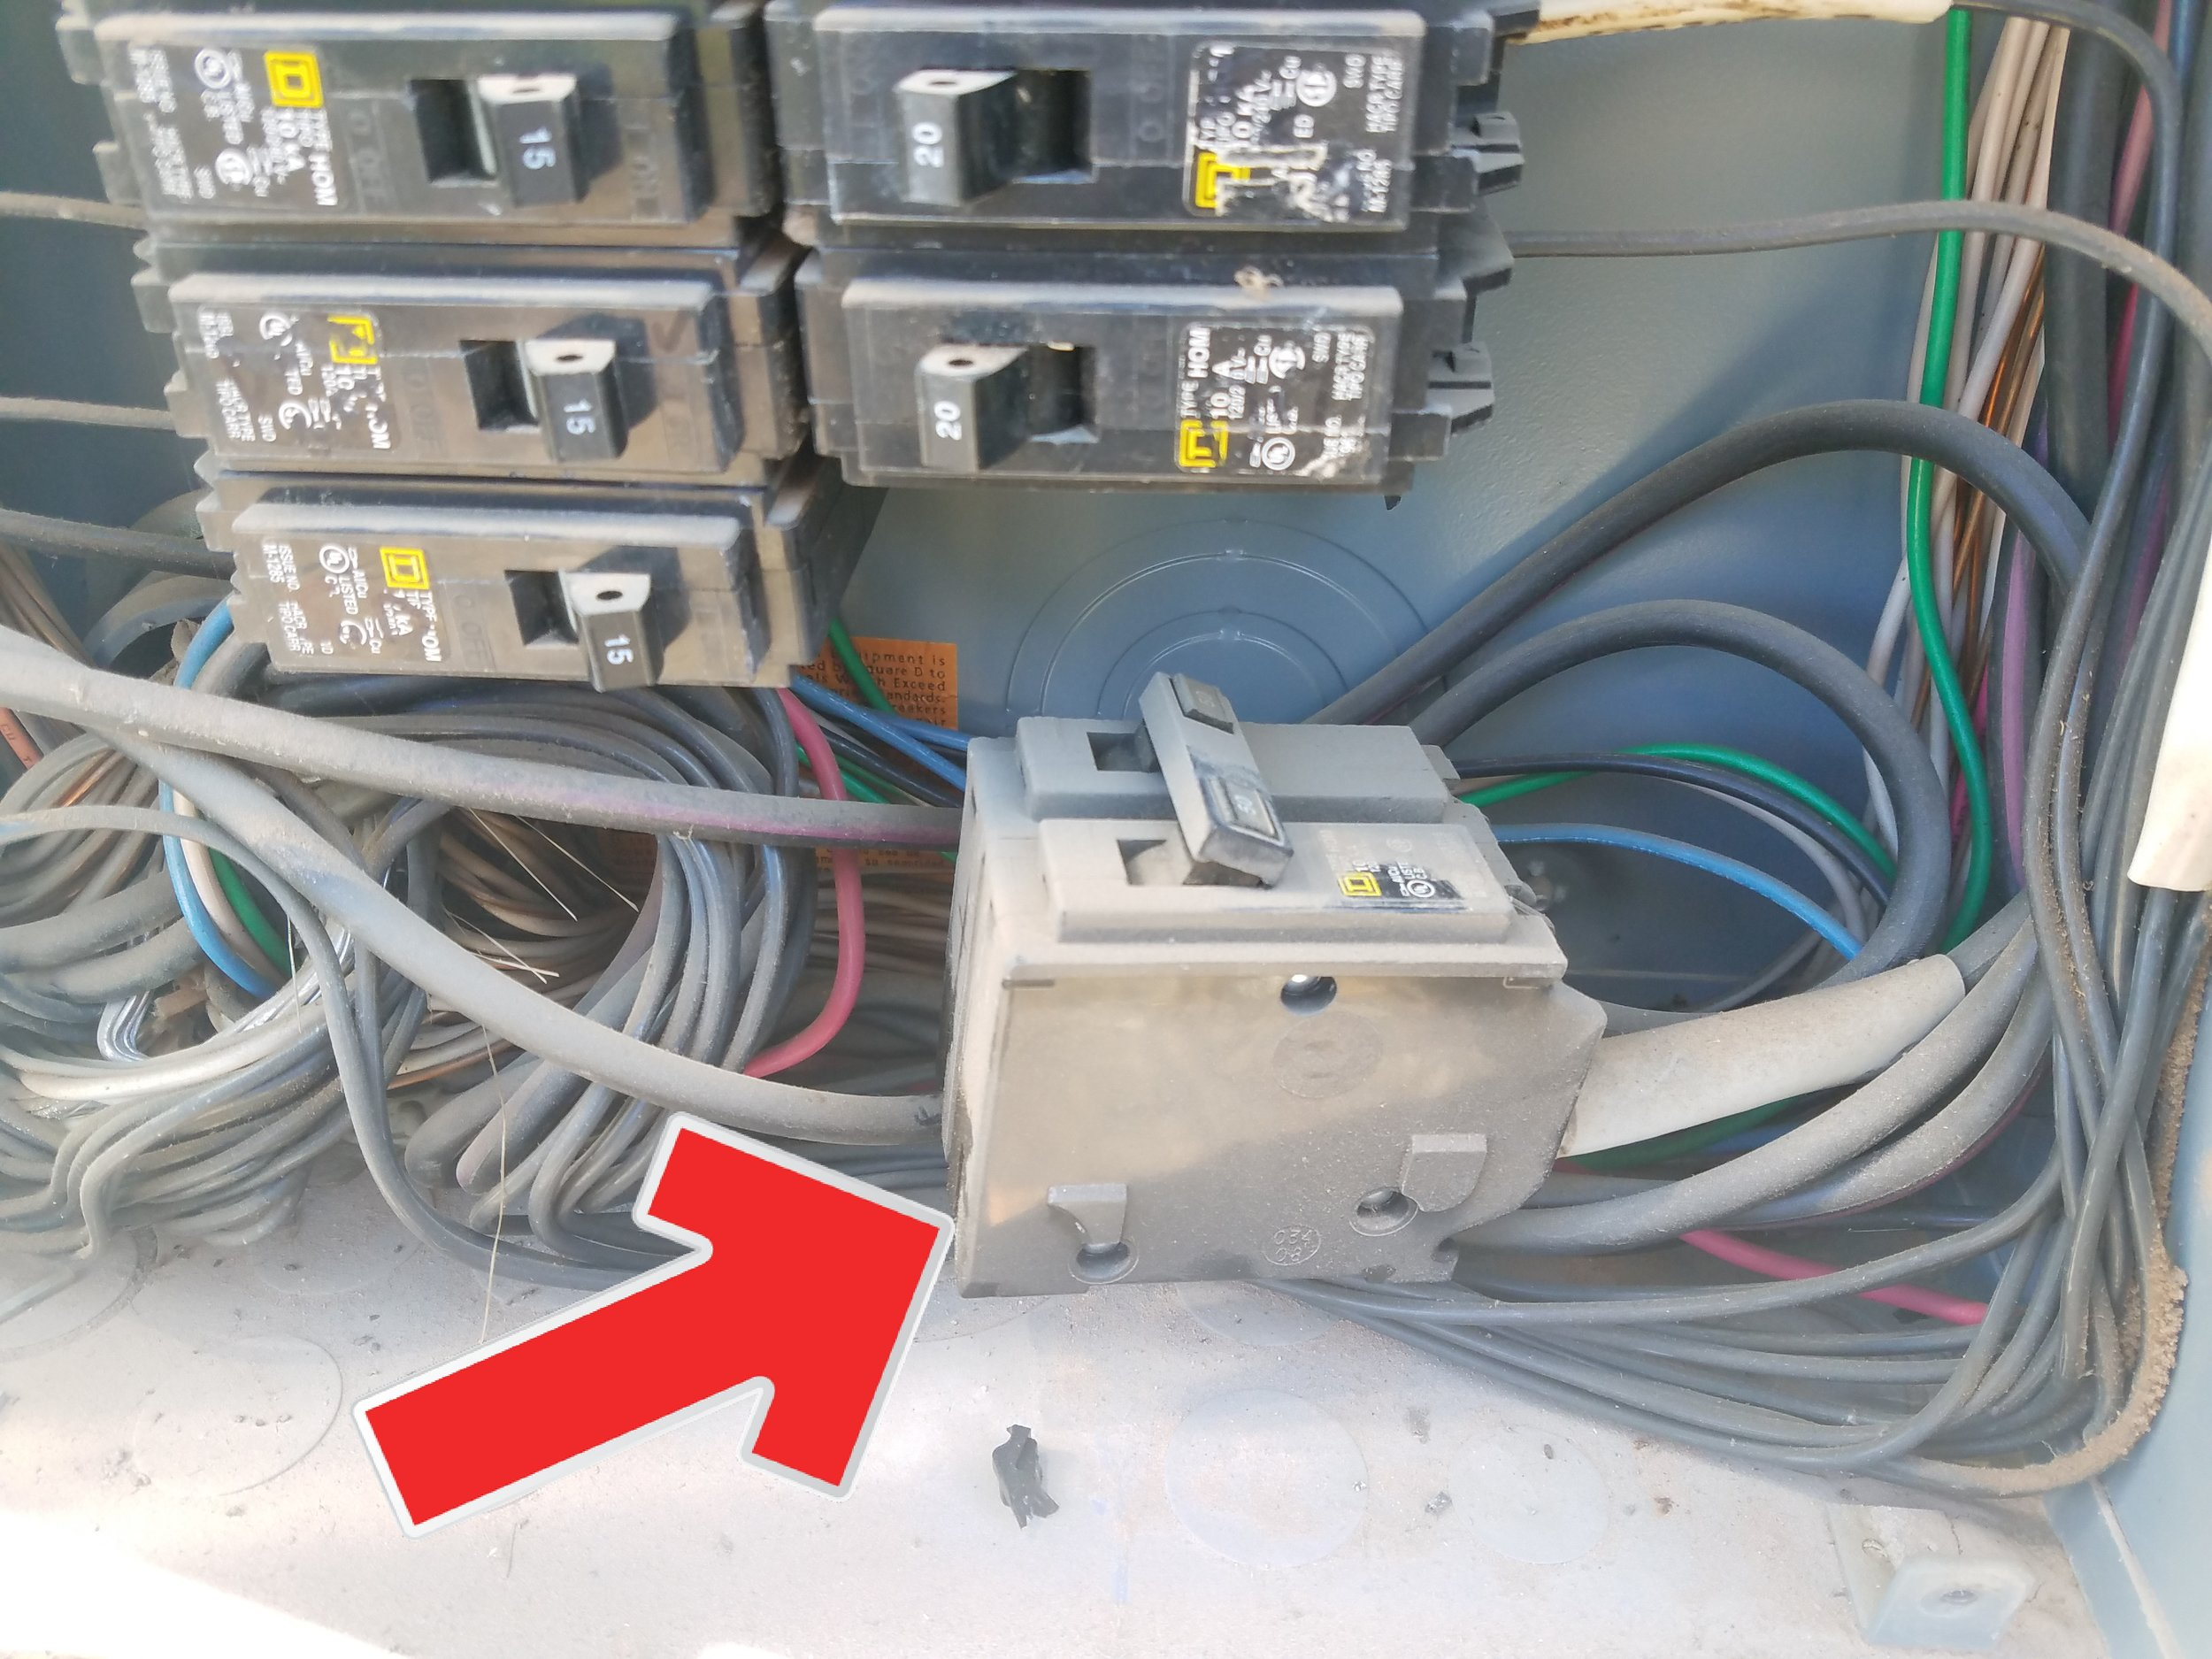 Electrical panel full? Just add another breaker and hide it behind the dead front cover. Totally unacceptable and a huge safety hazard.